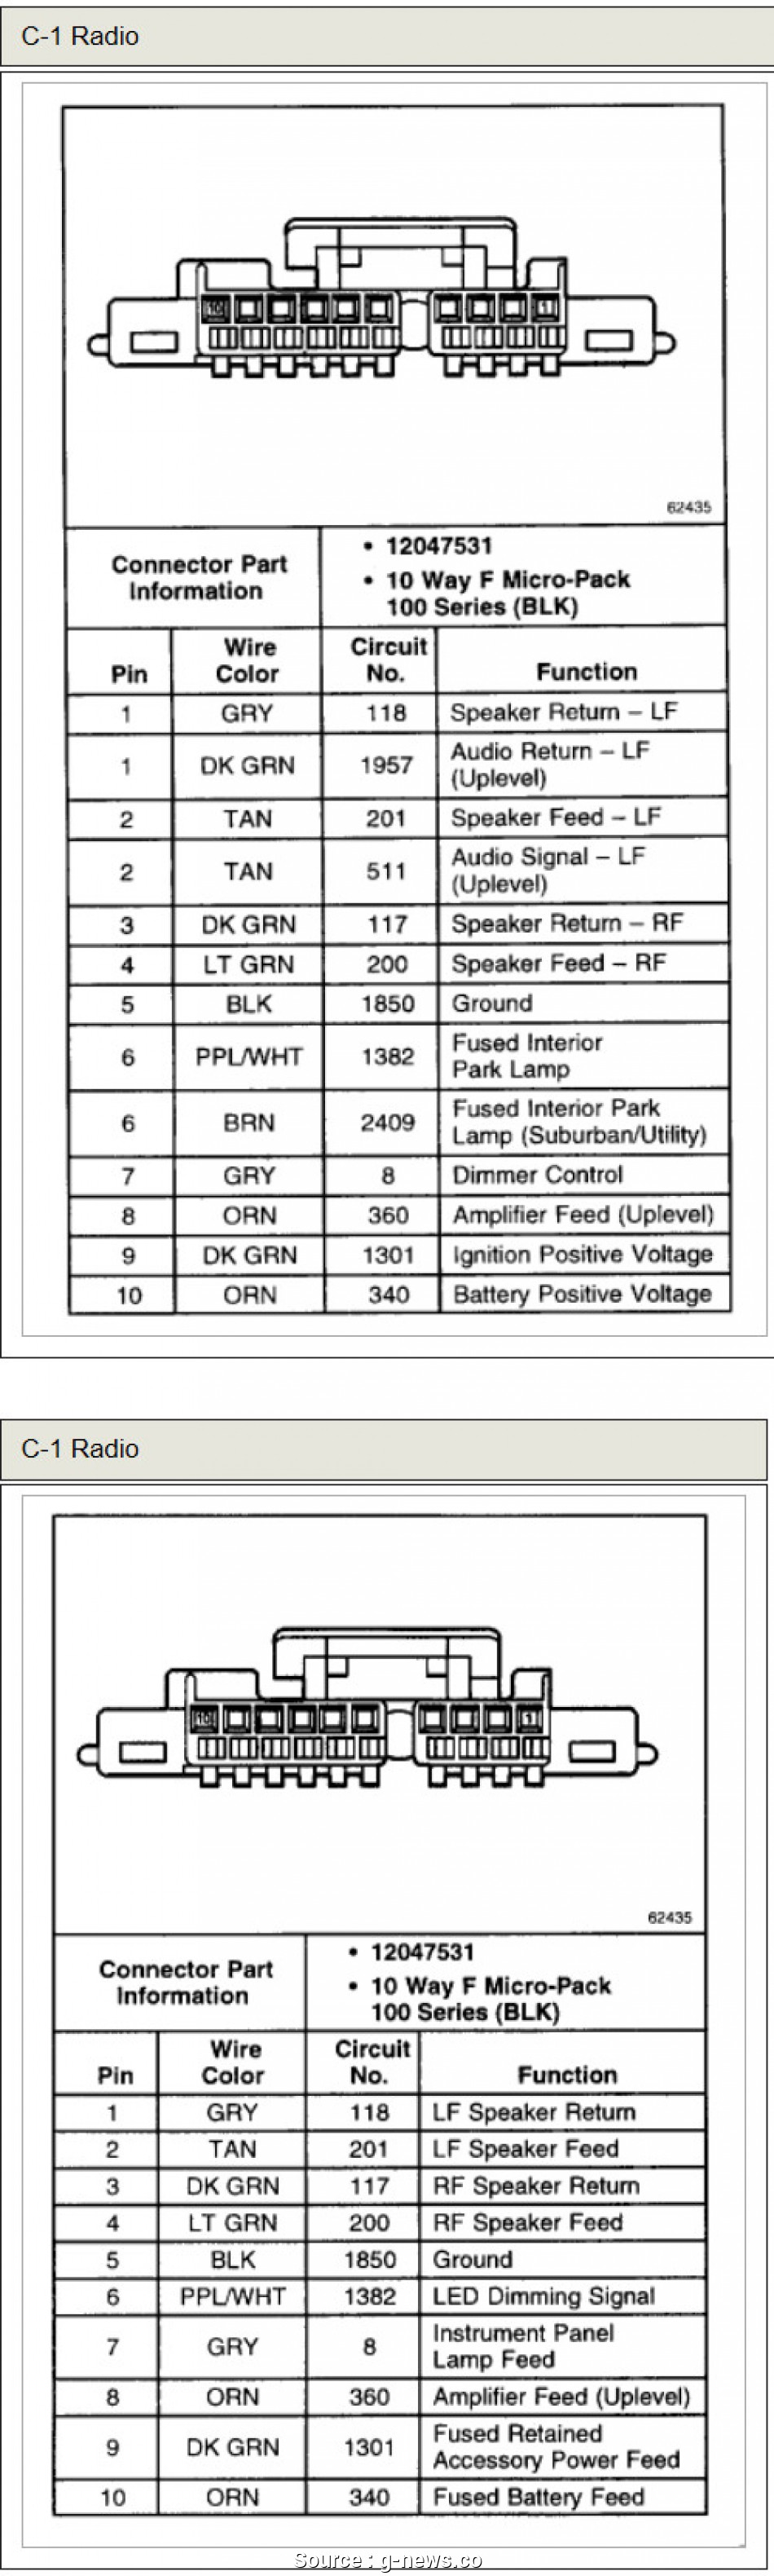 2001 Chevy Impala Stereo Wiring Diagram - Diagram Design Sources  circuit-flawless - circuit-flawless.lesmalinspres.fr | Wiring Diagram For 2001 Chevy Impala |  | circuit-flawless.lesmalinspres.fr